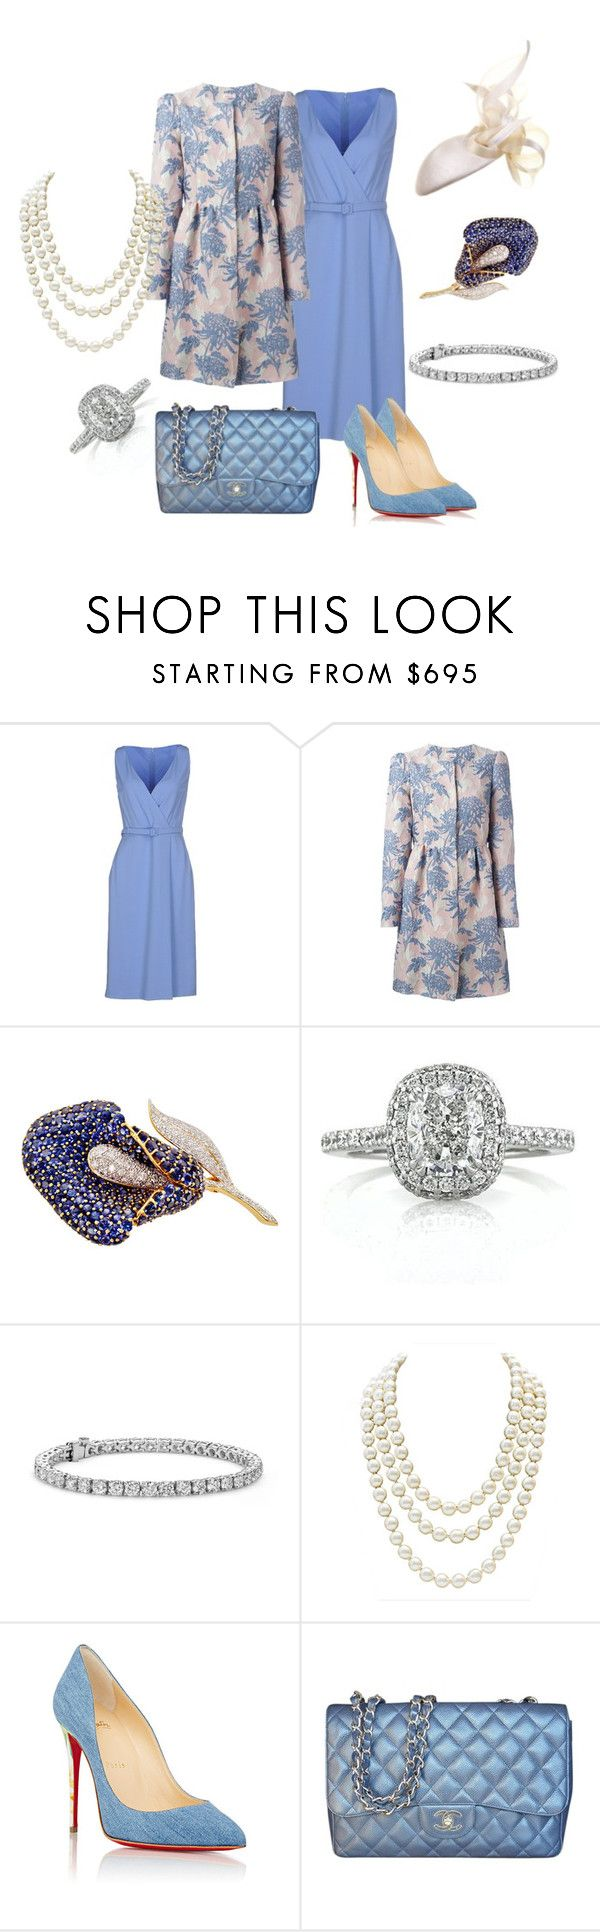 State Visit to Vietnam Day 3: Departure by queenalex on Polyvore featuring мода, Gucci, P.A.R.O.S.H., Christian Louboutin, Chanel, Mark Broumand, Blue Nile and Philip Treacy